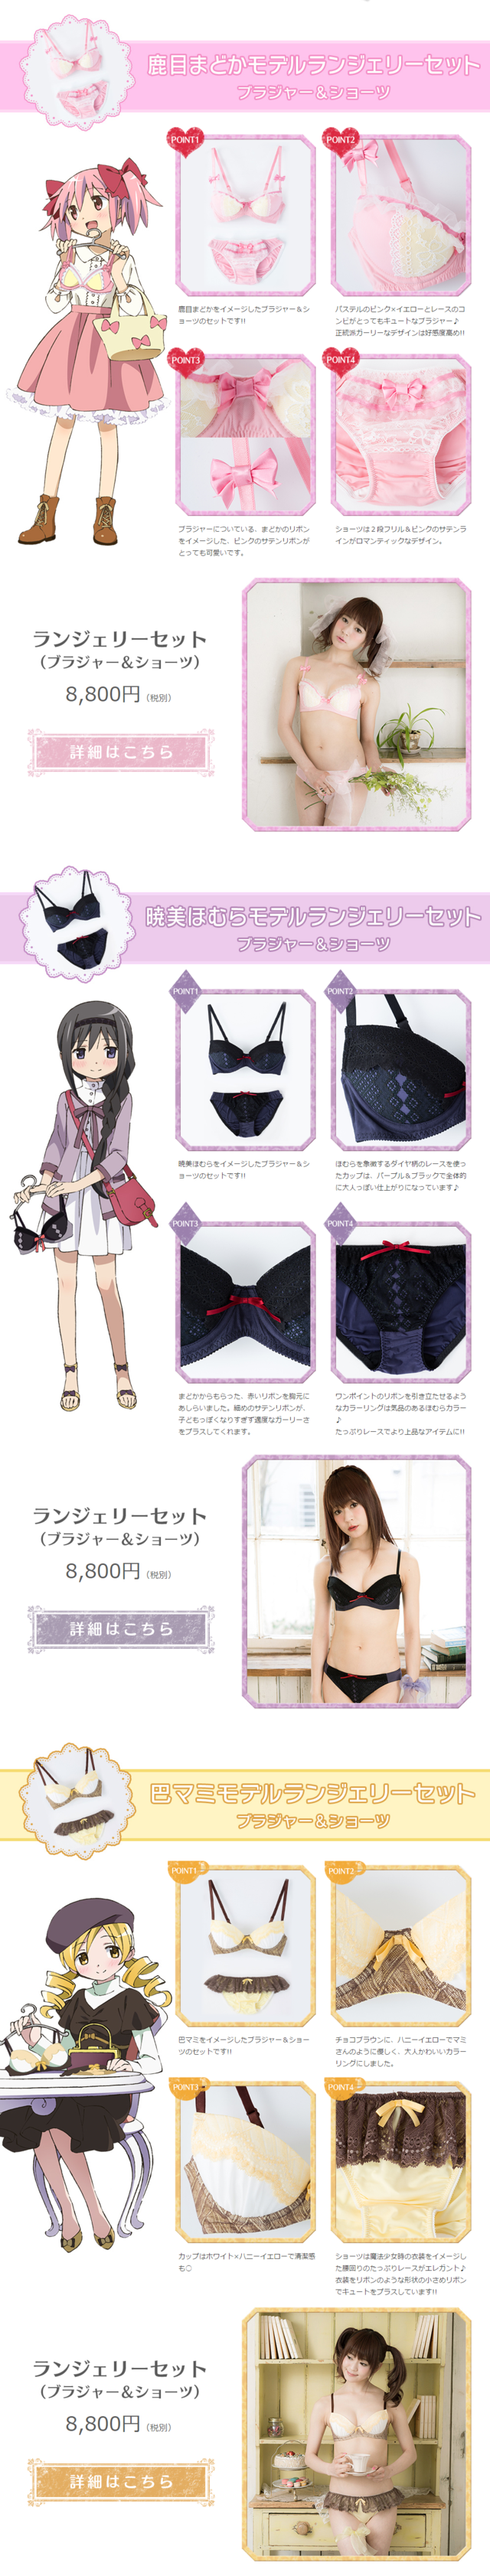 Supergroupies Lets You Be a Magical Girl on the inside with Madoka Lingerie5